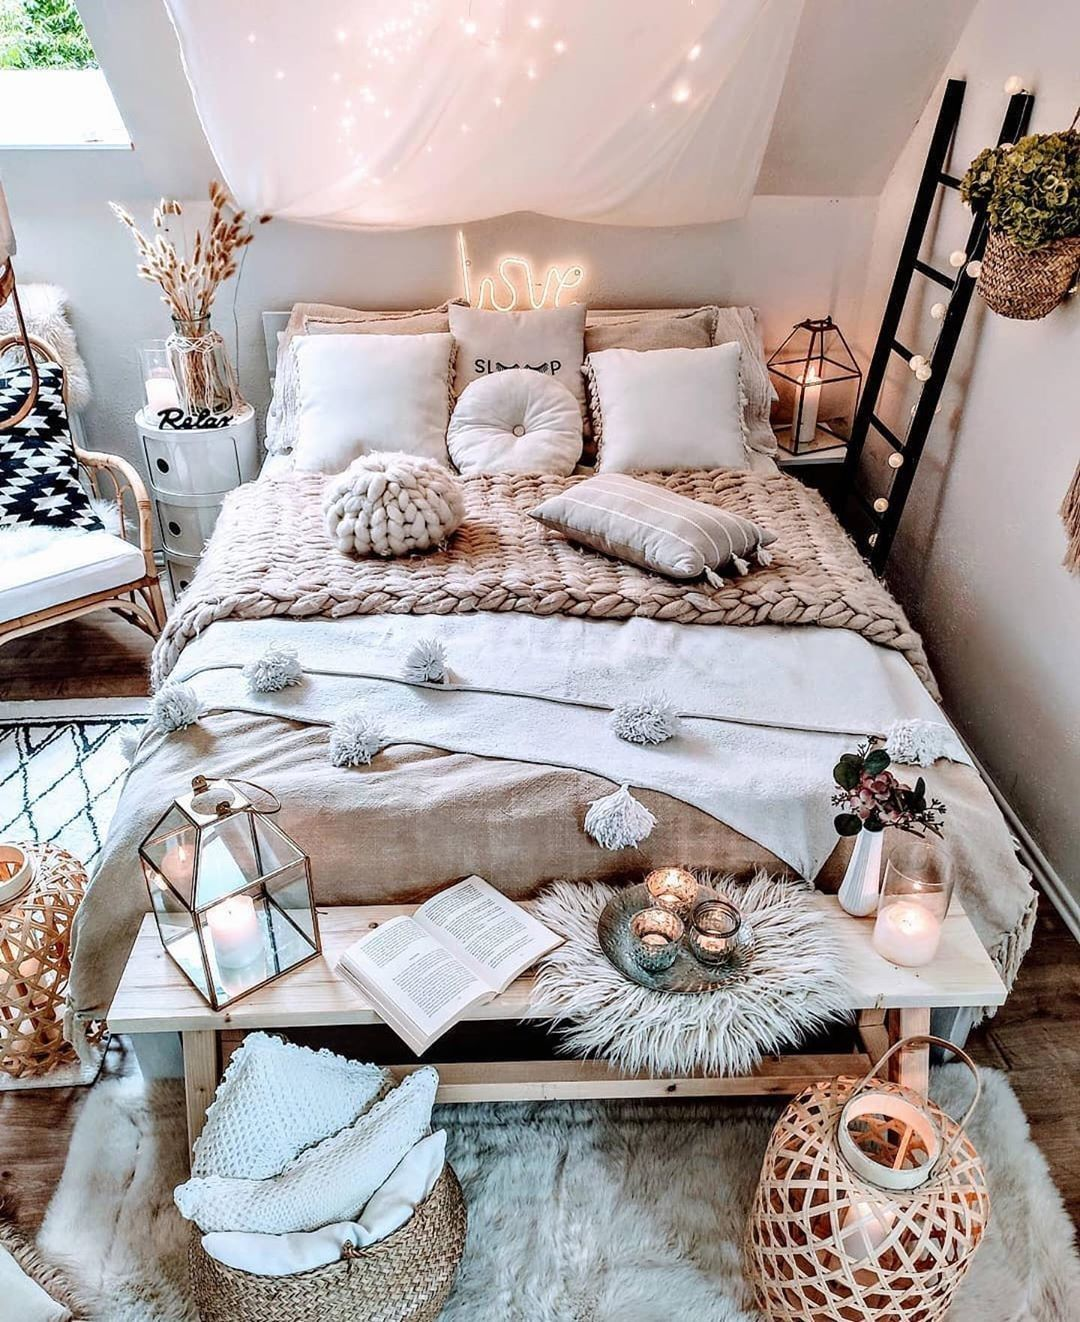 Bohemian Style Ideas For Bedroom Decor - My Blog